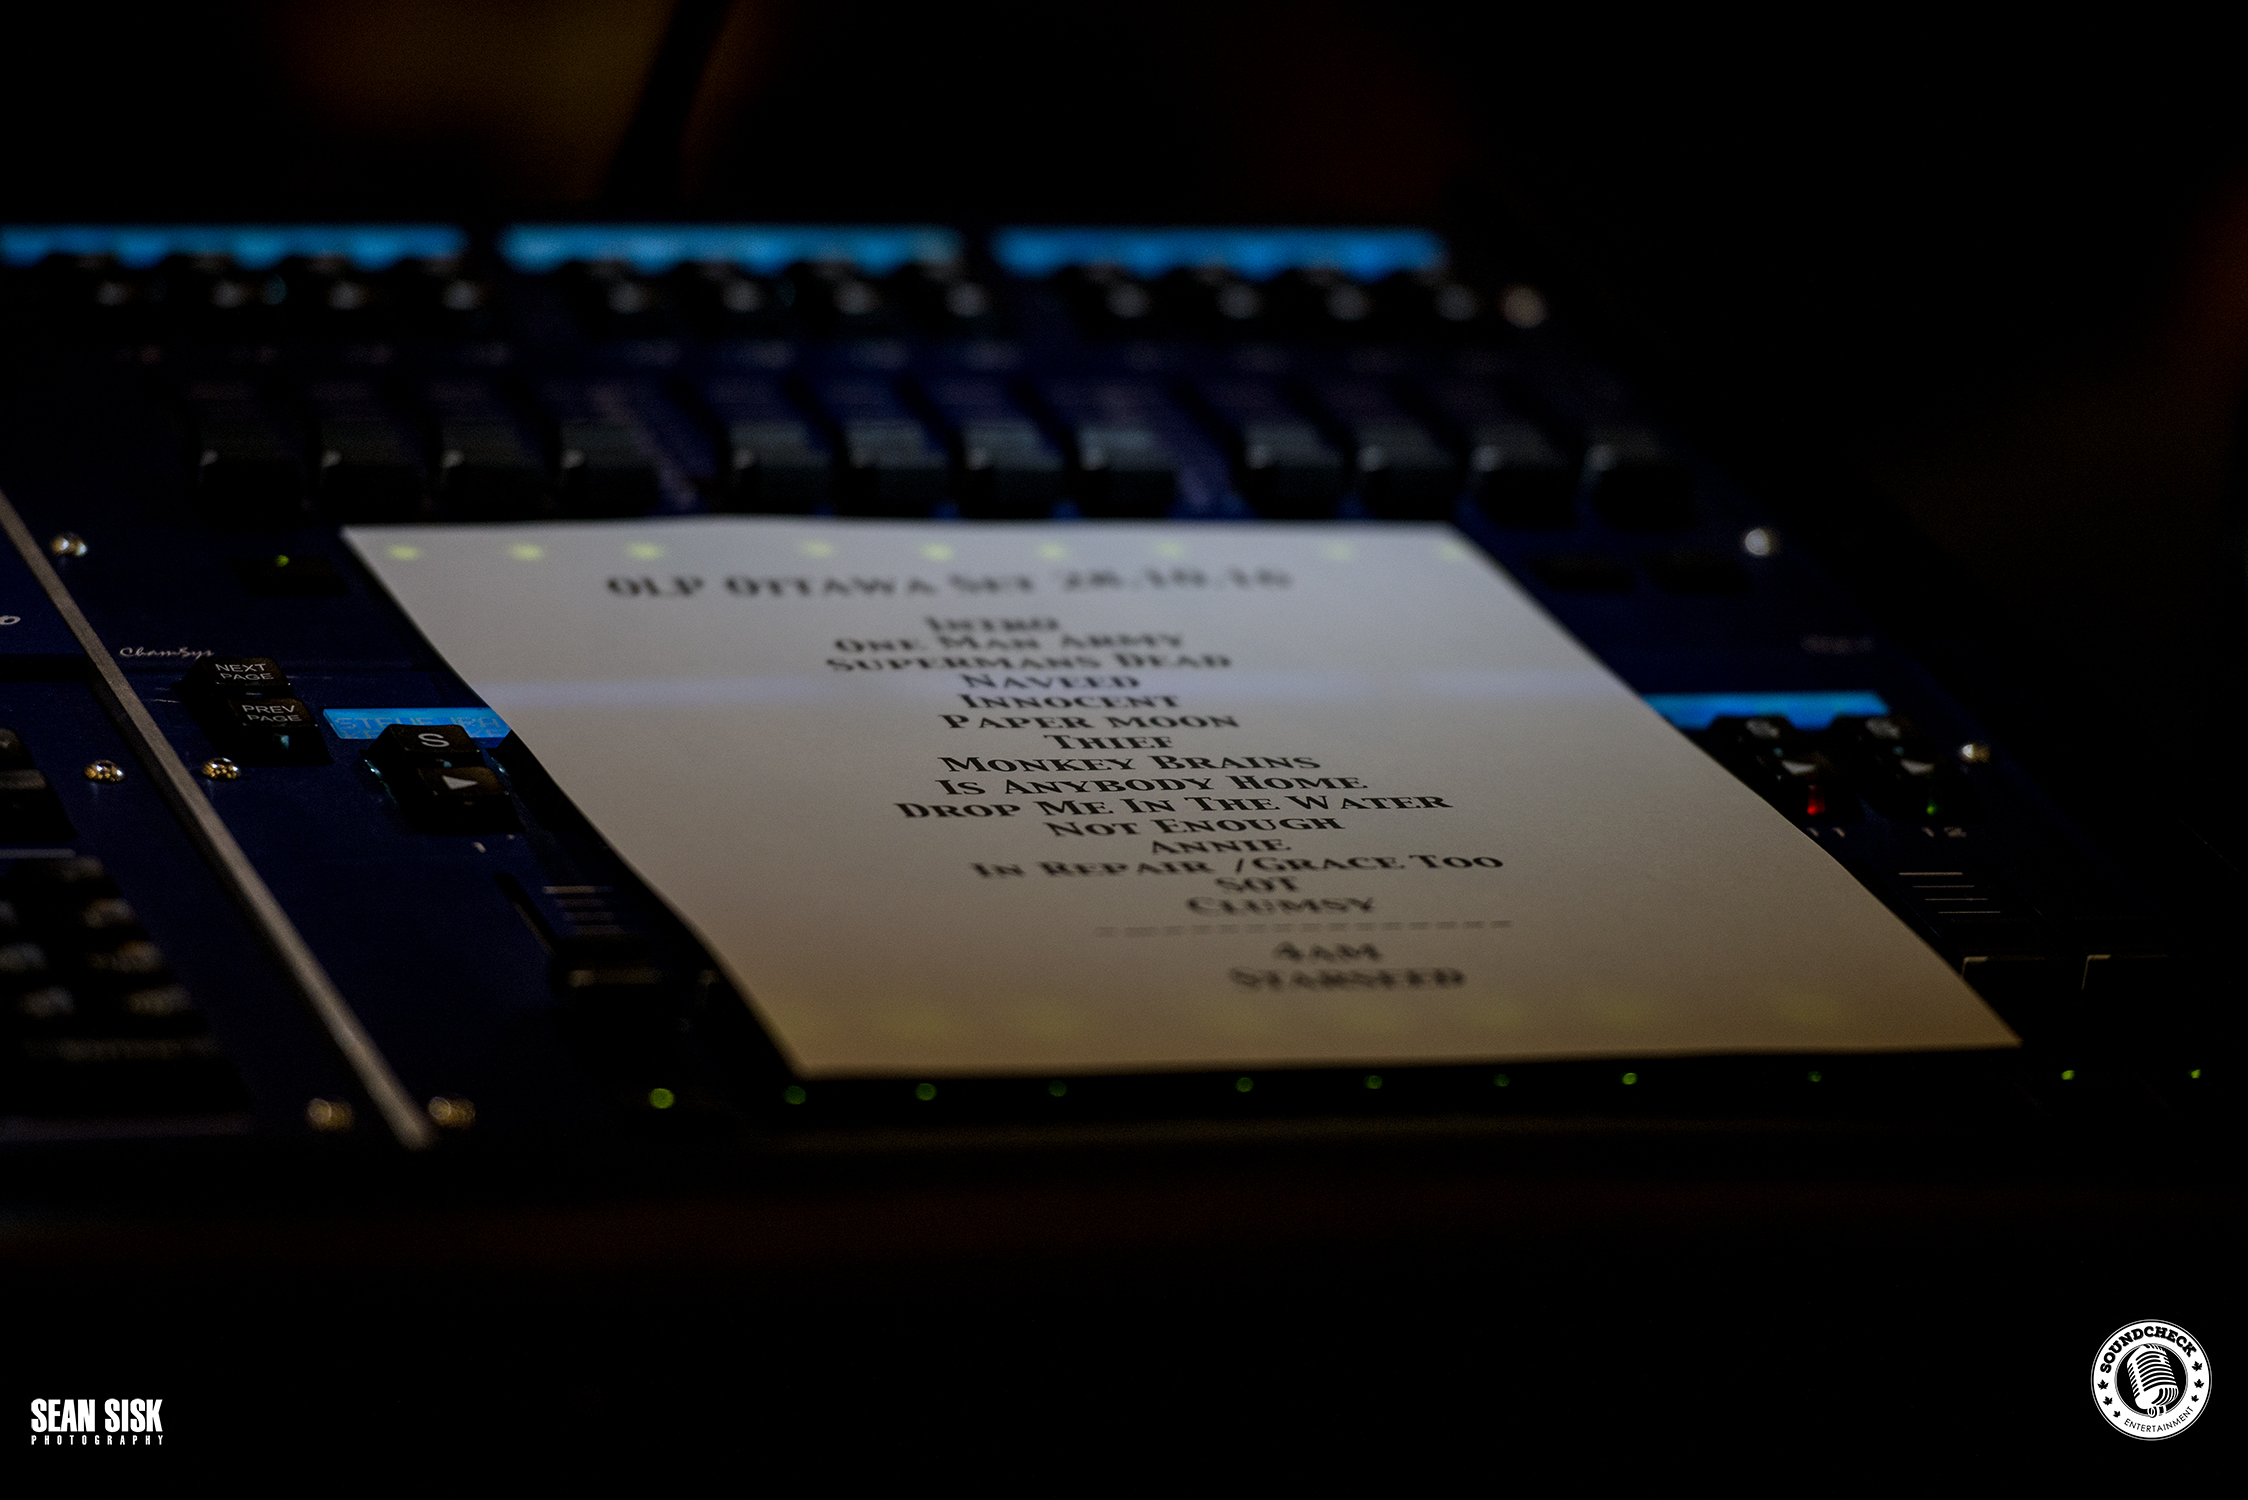 Our Lady Peace Set List